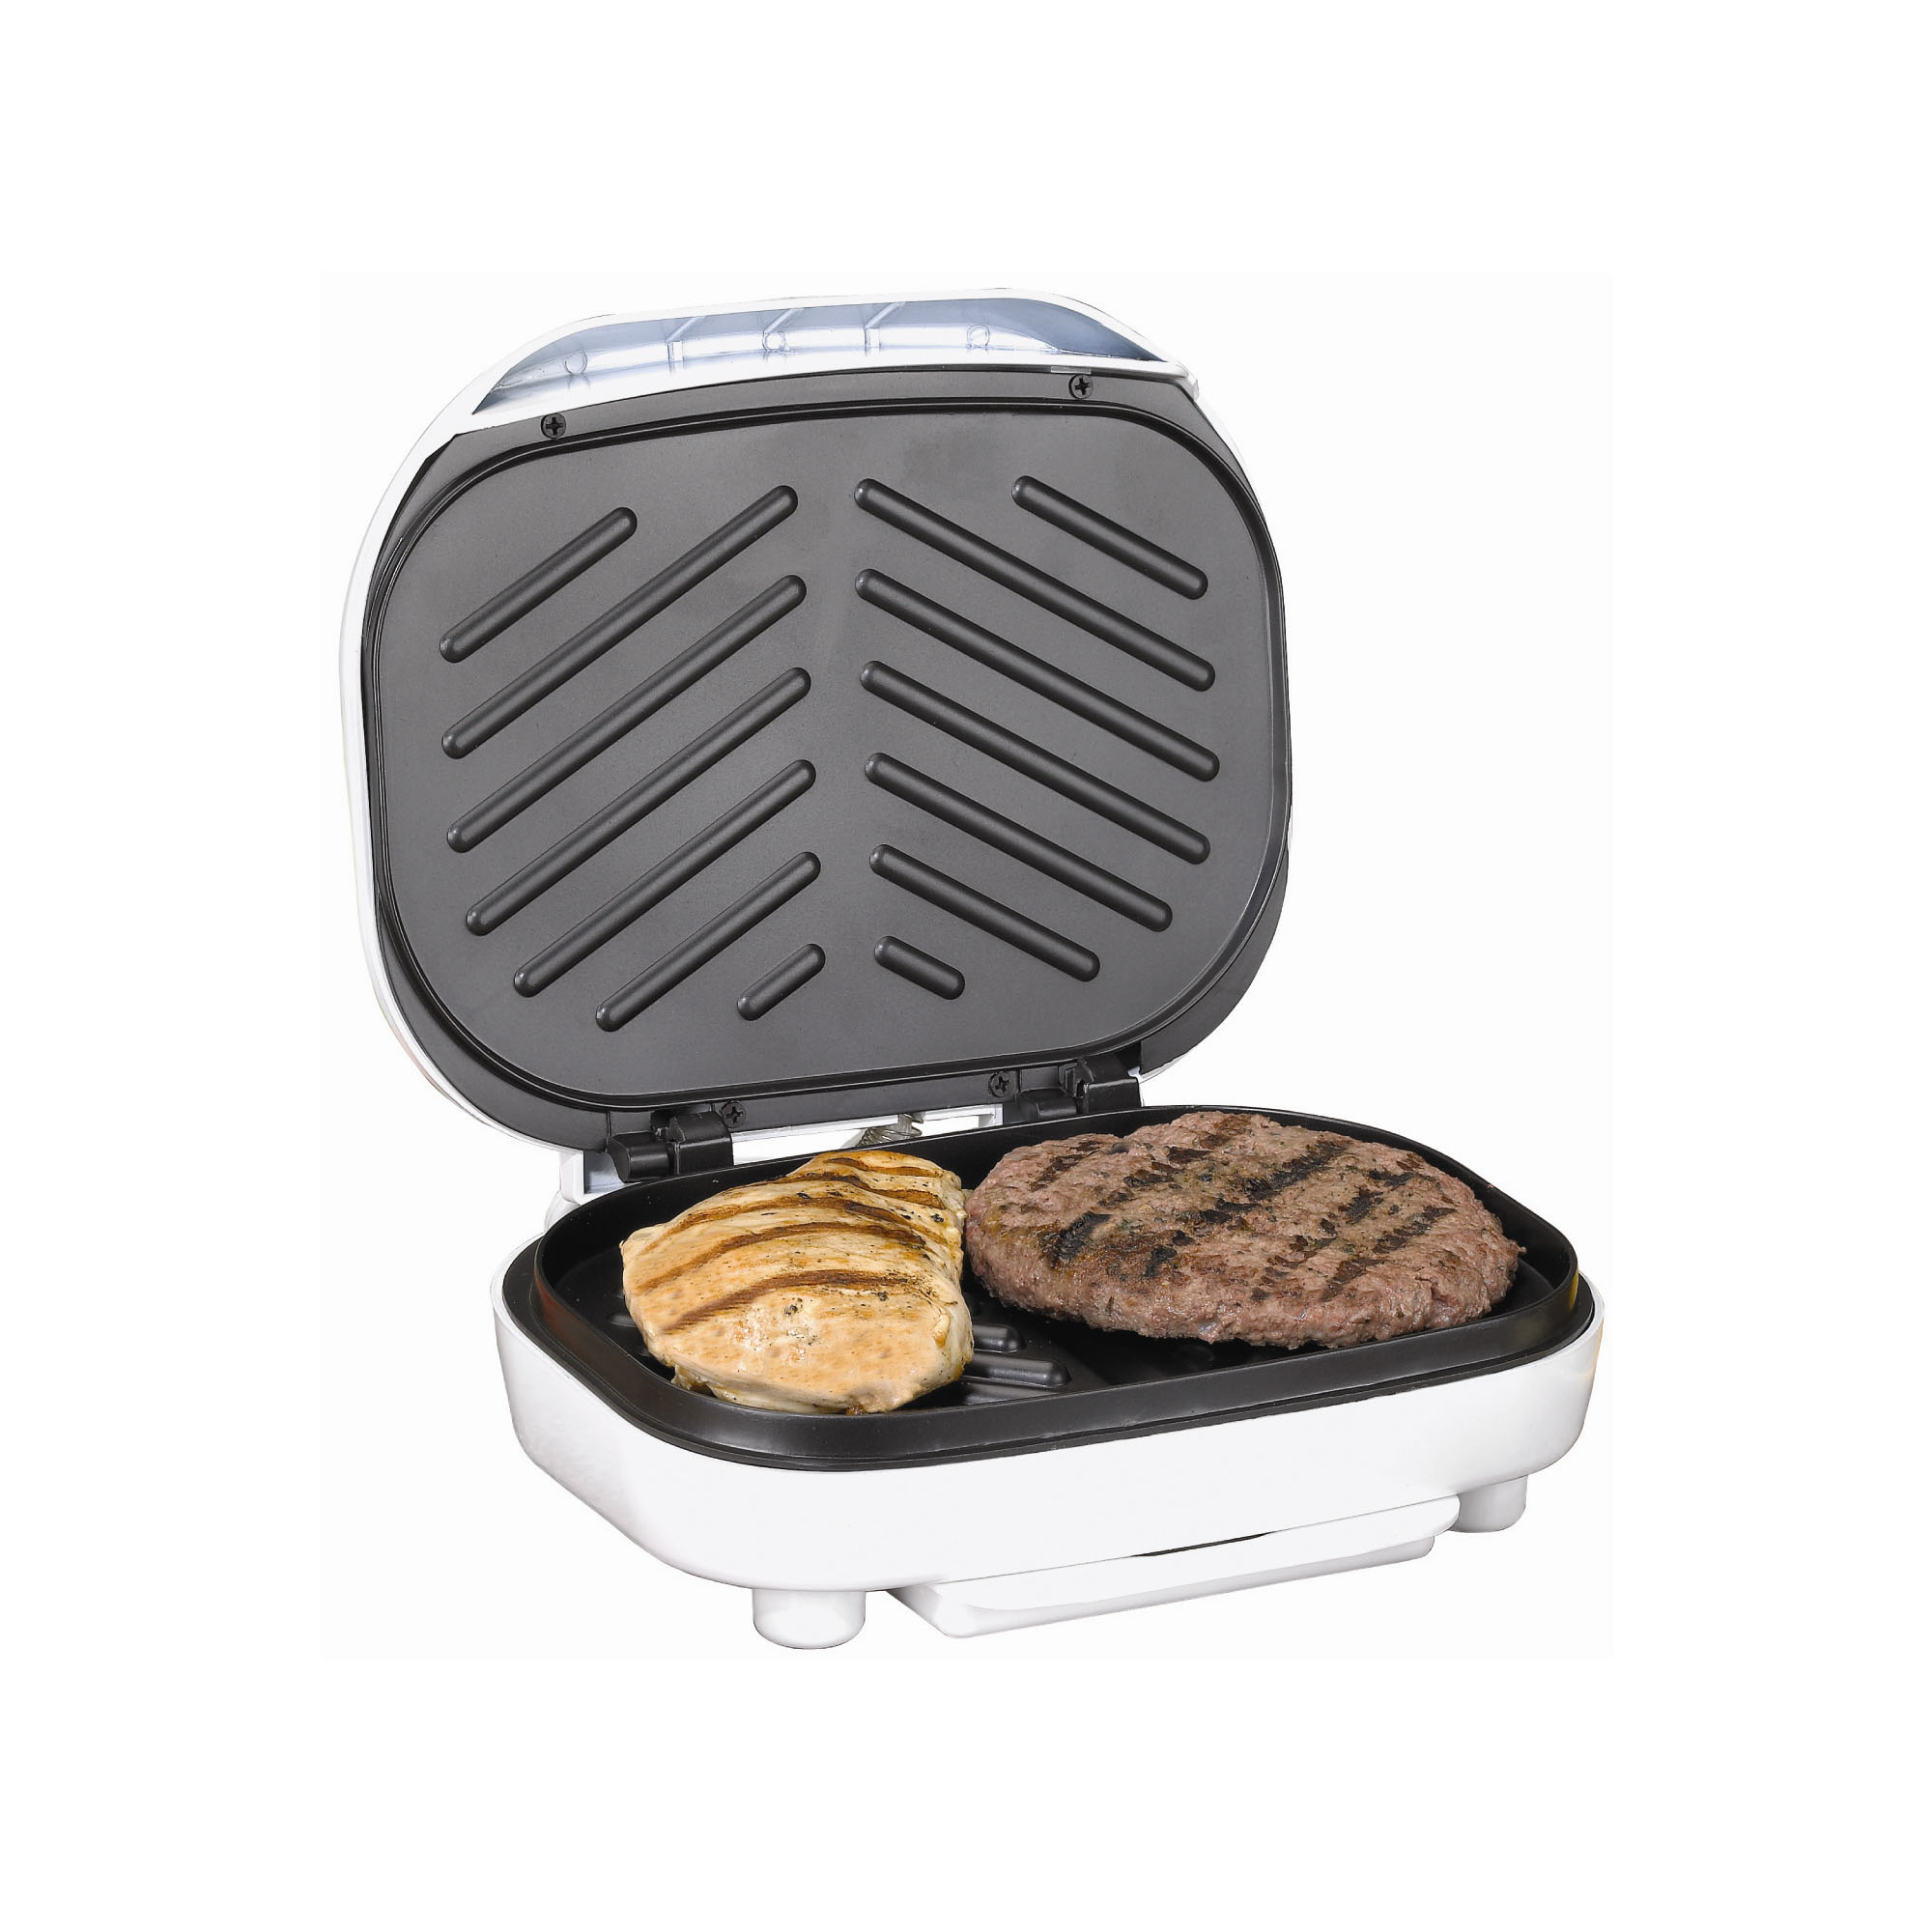 BRENTWOOD ELECTRIC CONTACT GRILL 2 SLICE